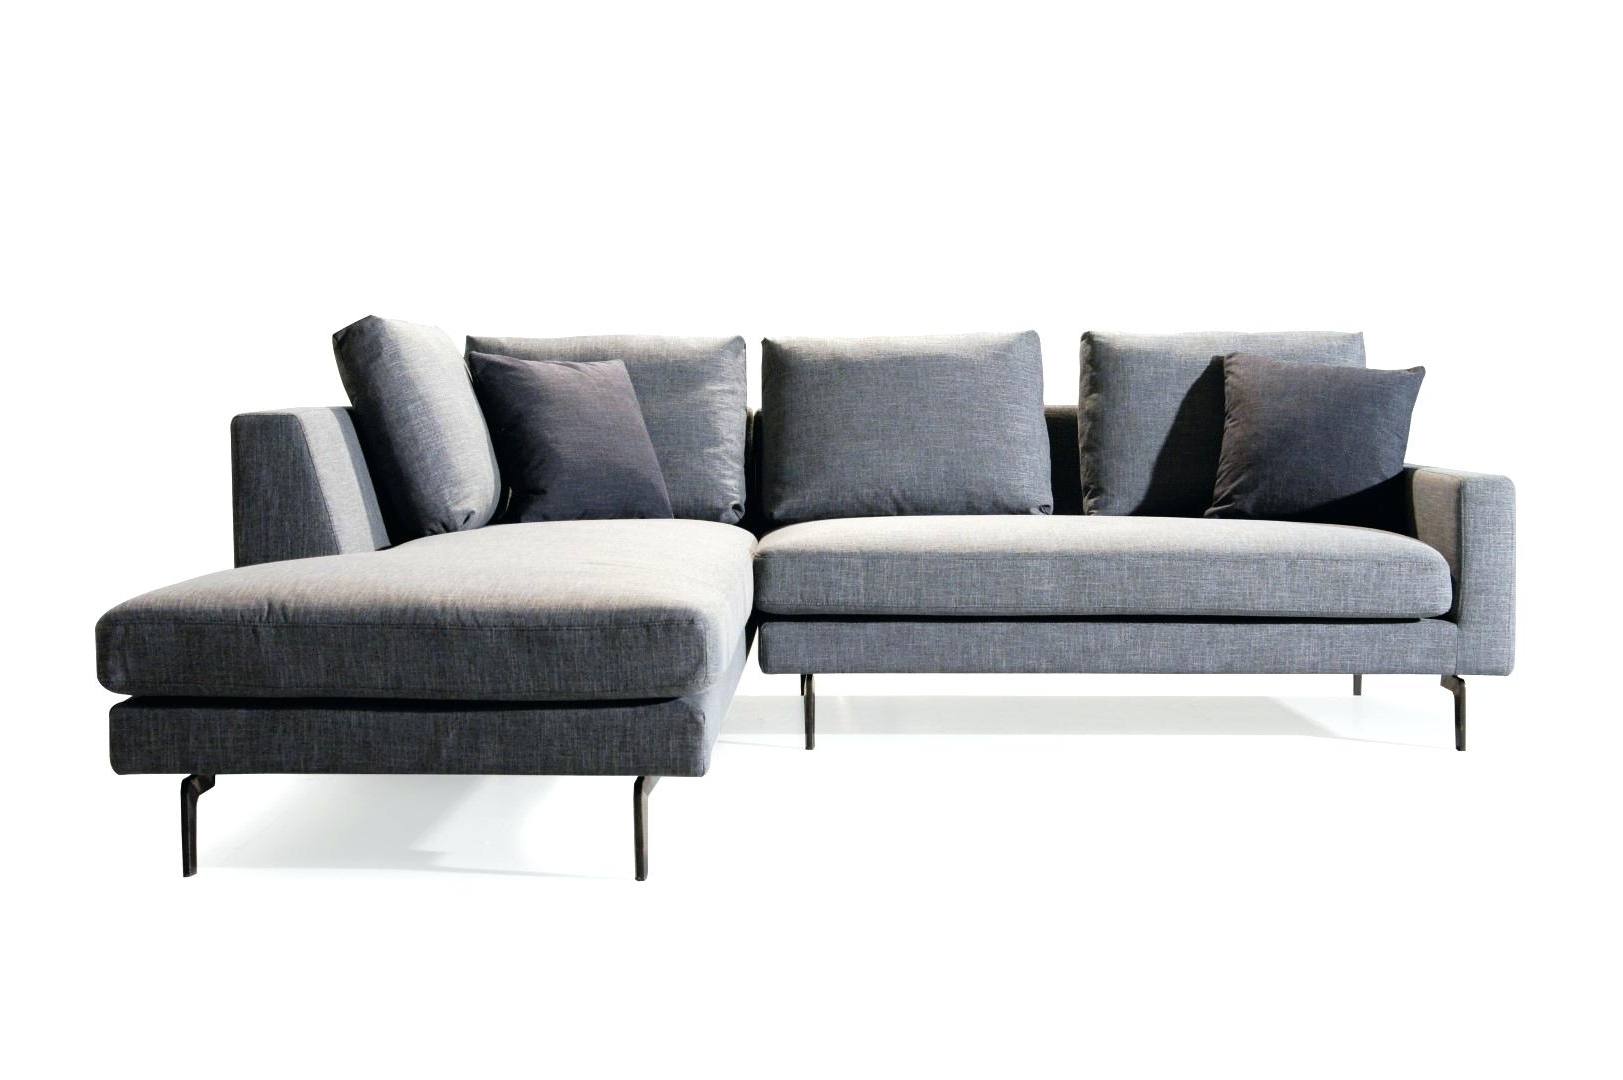 Latest Kijiji Calgary Sectional Sofas For Furniture : Corner Sofa Uk Sectional Couch Layout Sectional Sofa (View 7 of 15)